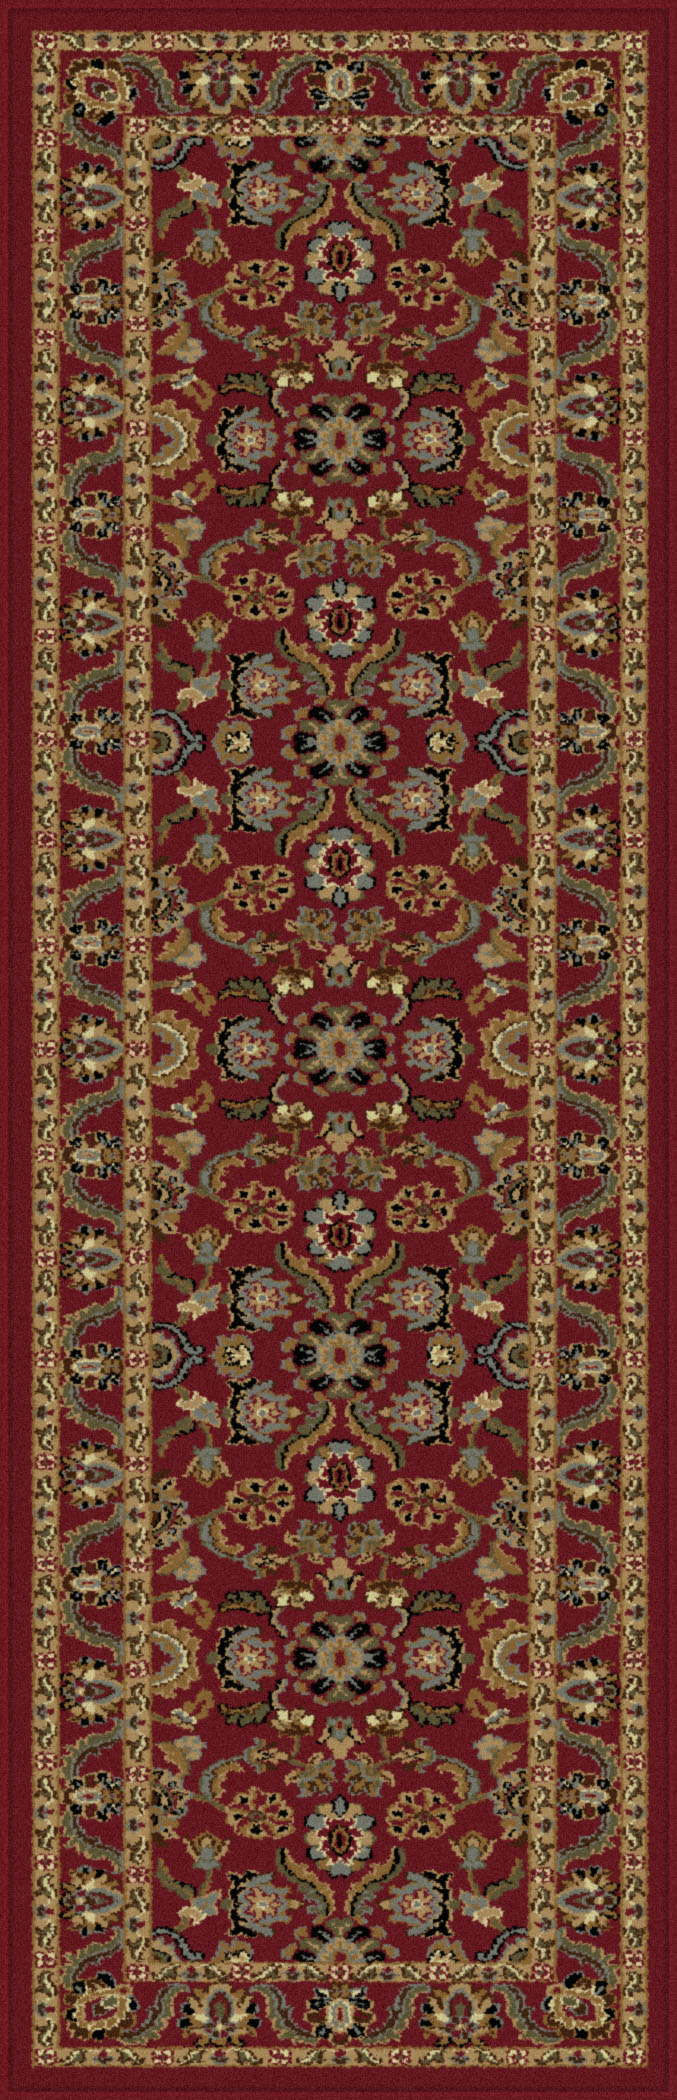 Sensation 4840 Red Traditional Area Rug